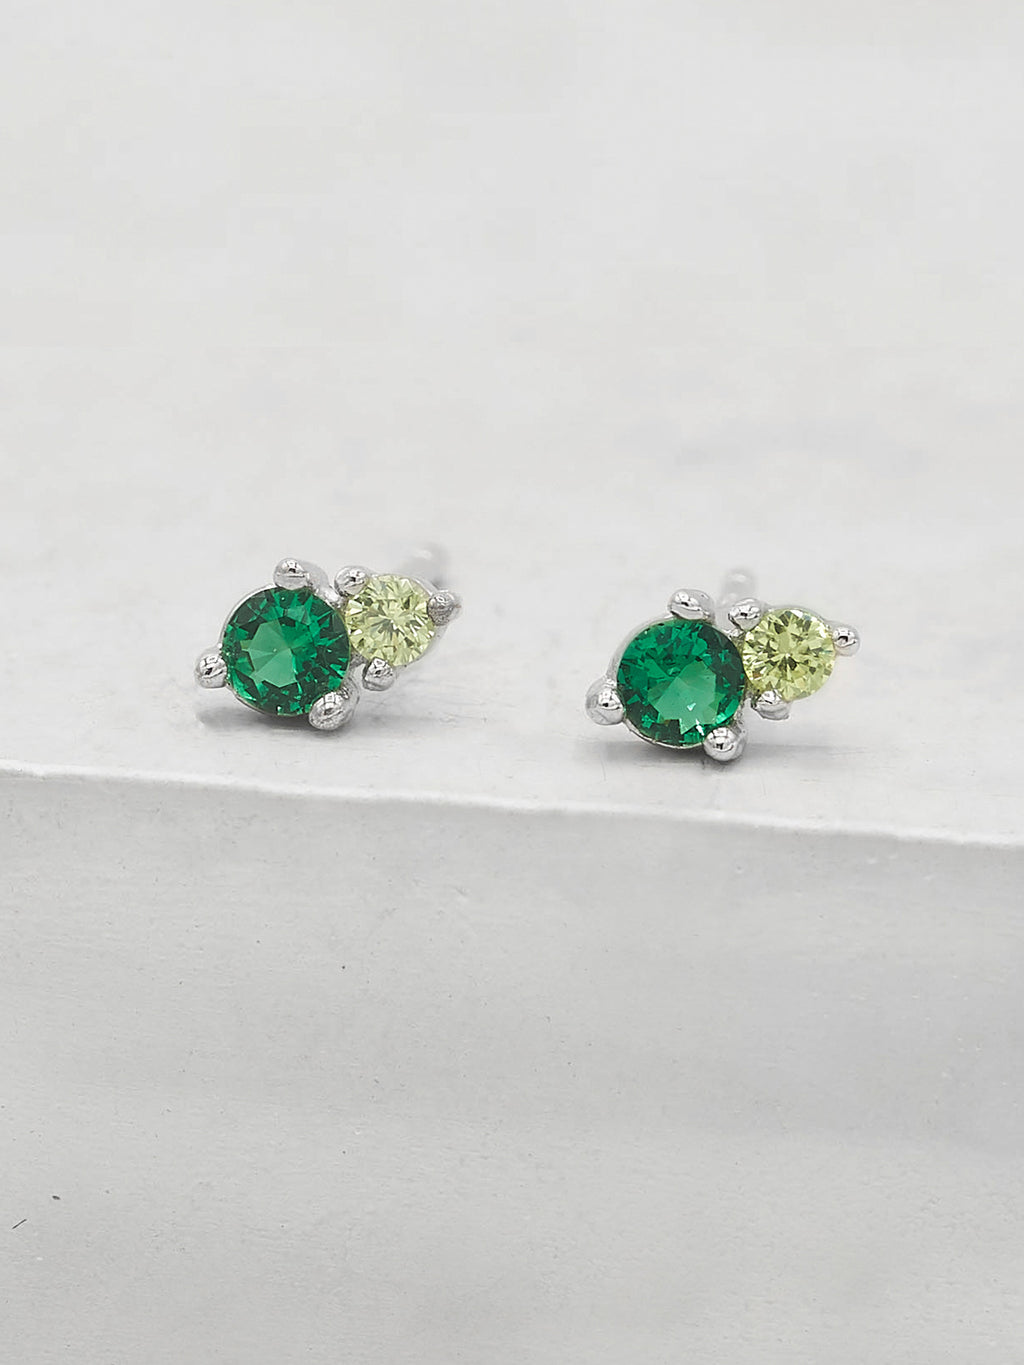 Green Emerald Round Shape Tiny CZ Silver Stud Earrings by The Faint Hearted Jewelry